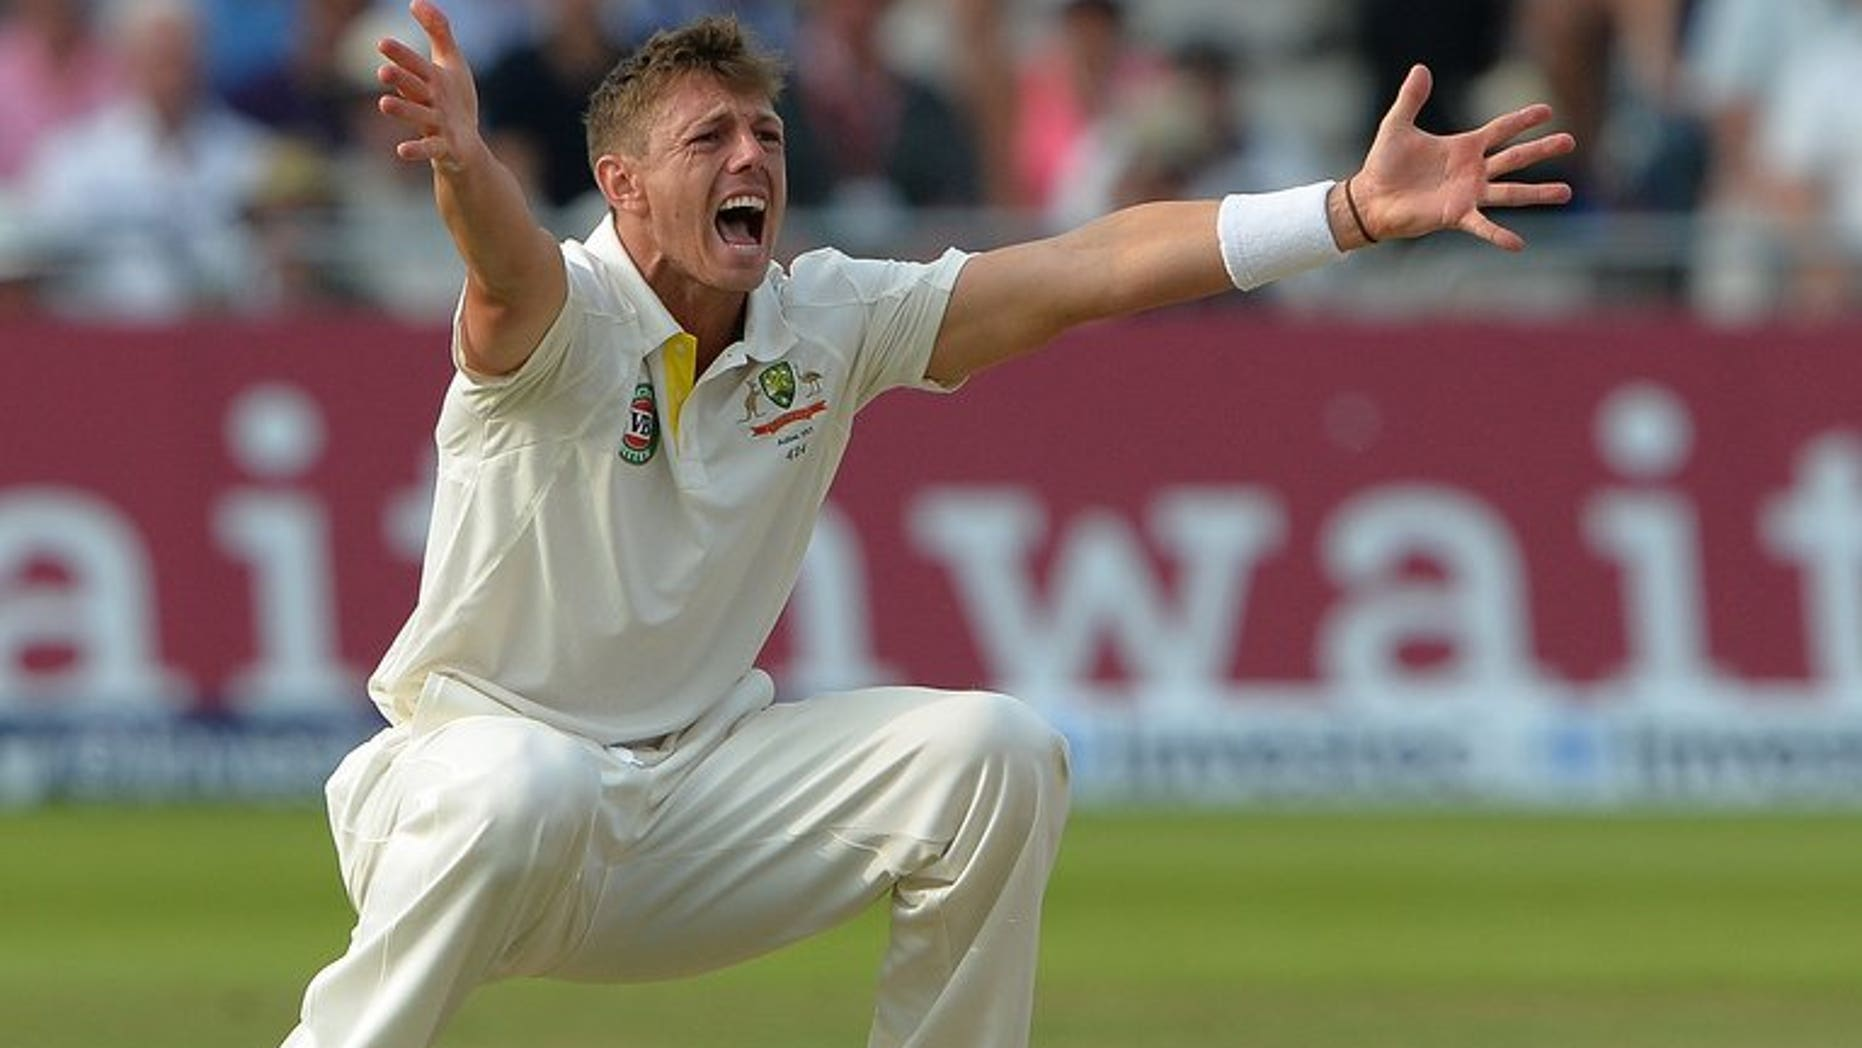 Australia's James Pattinson appeals in vain for a wicket at Trent Bridge in Nottingham, central England, on July 12, 2013.